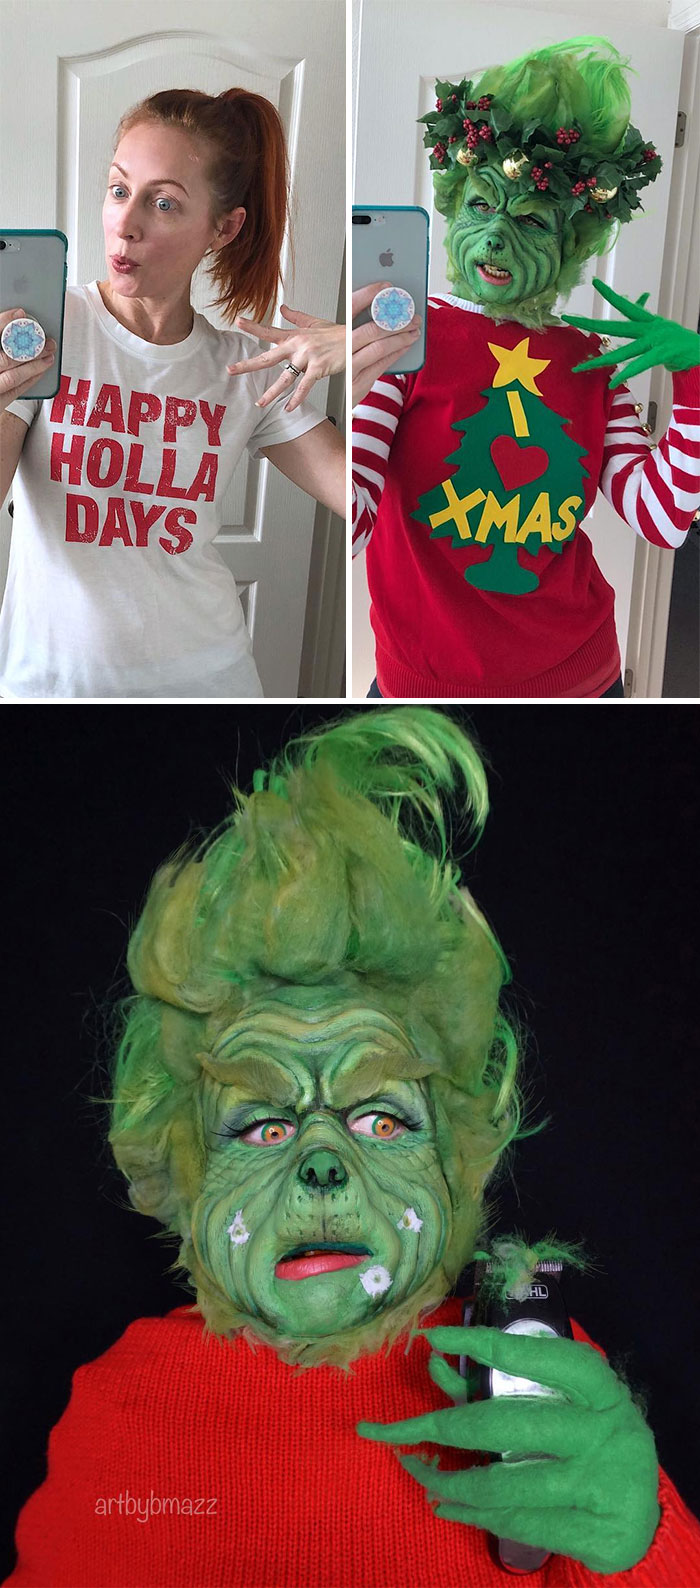 Grinch (How The Grinch Stole Christmas)